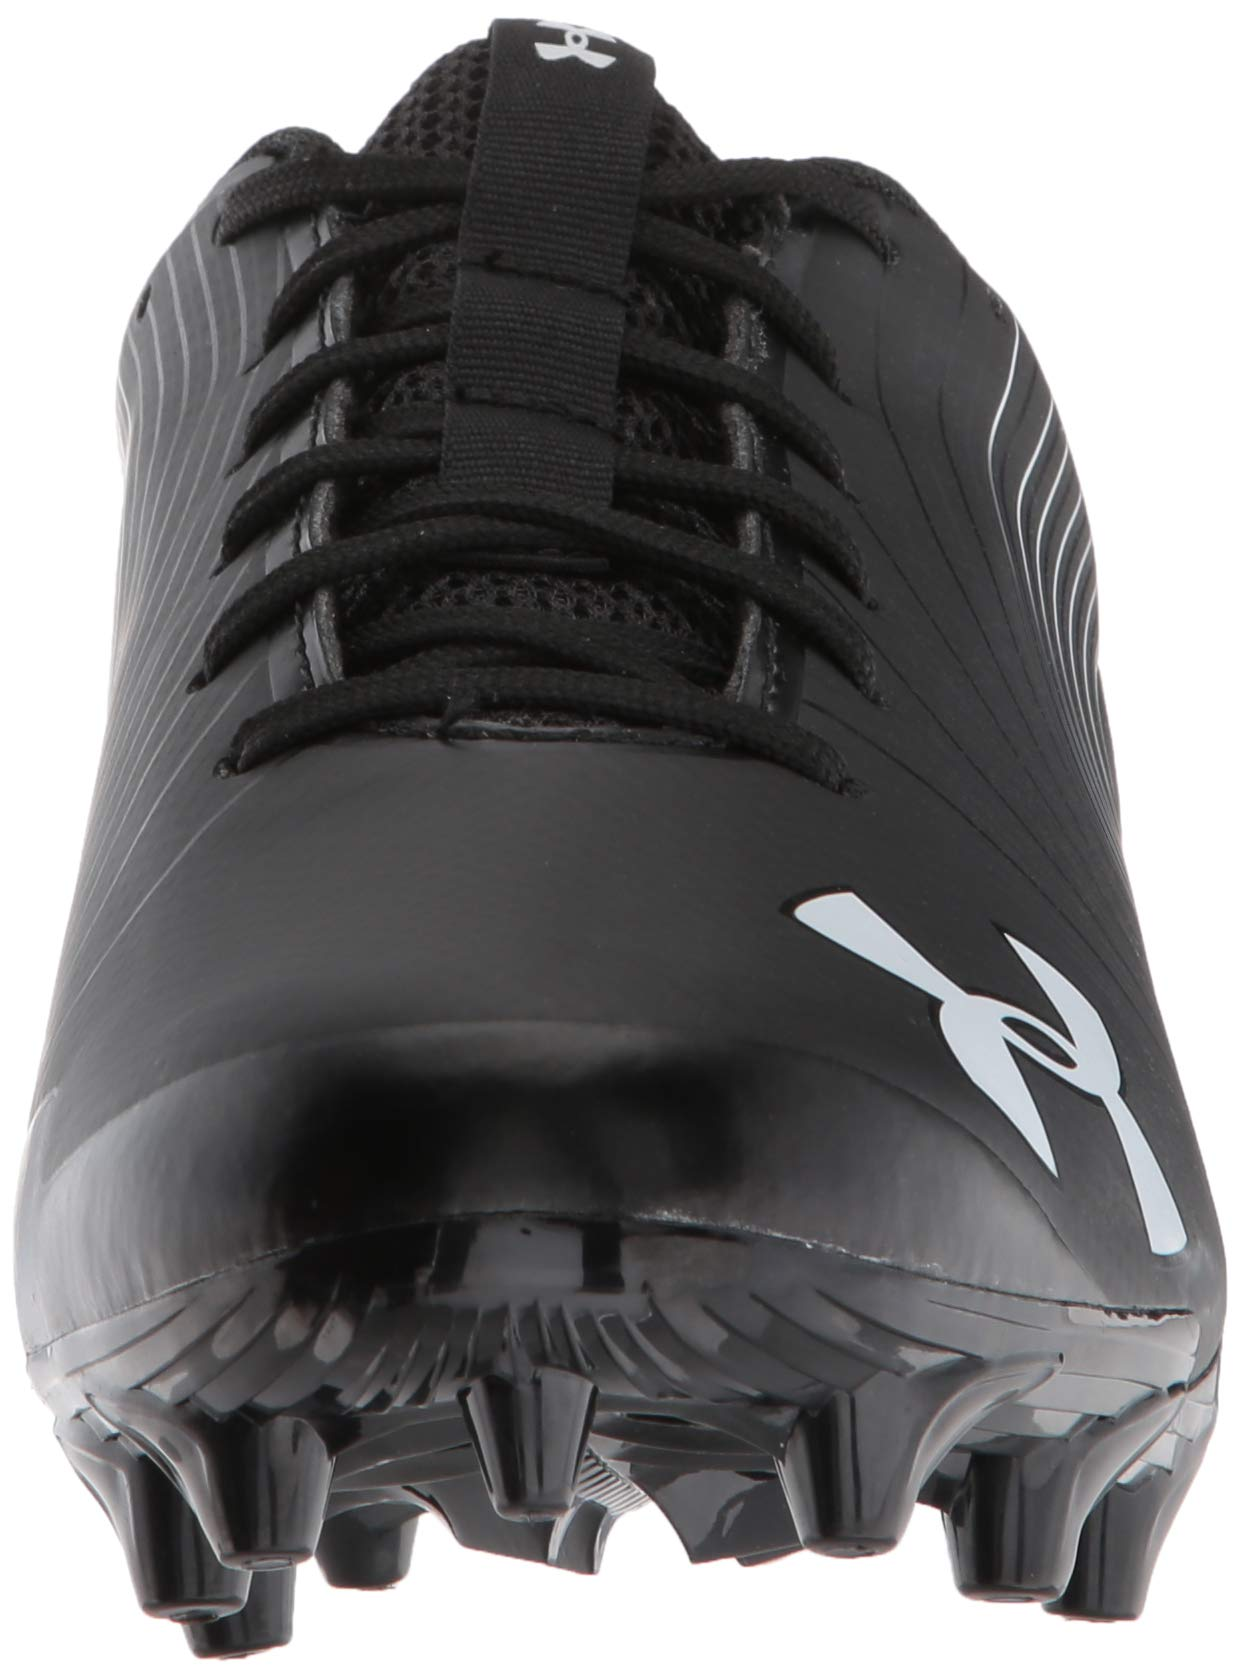 Under Armour Men's Speed Phantom MC Football Shoe Black (001)/White 6.5 by Under Armour (Image #4)